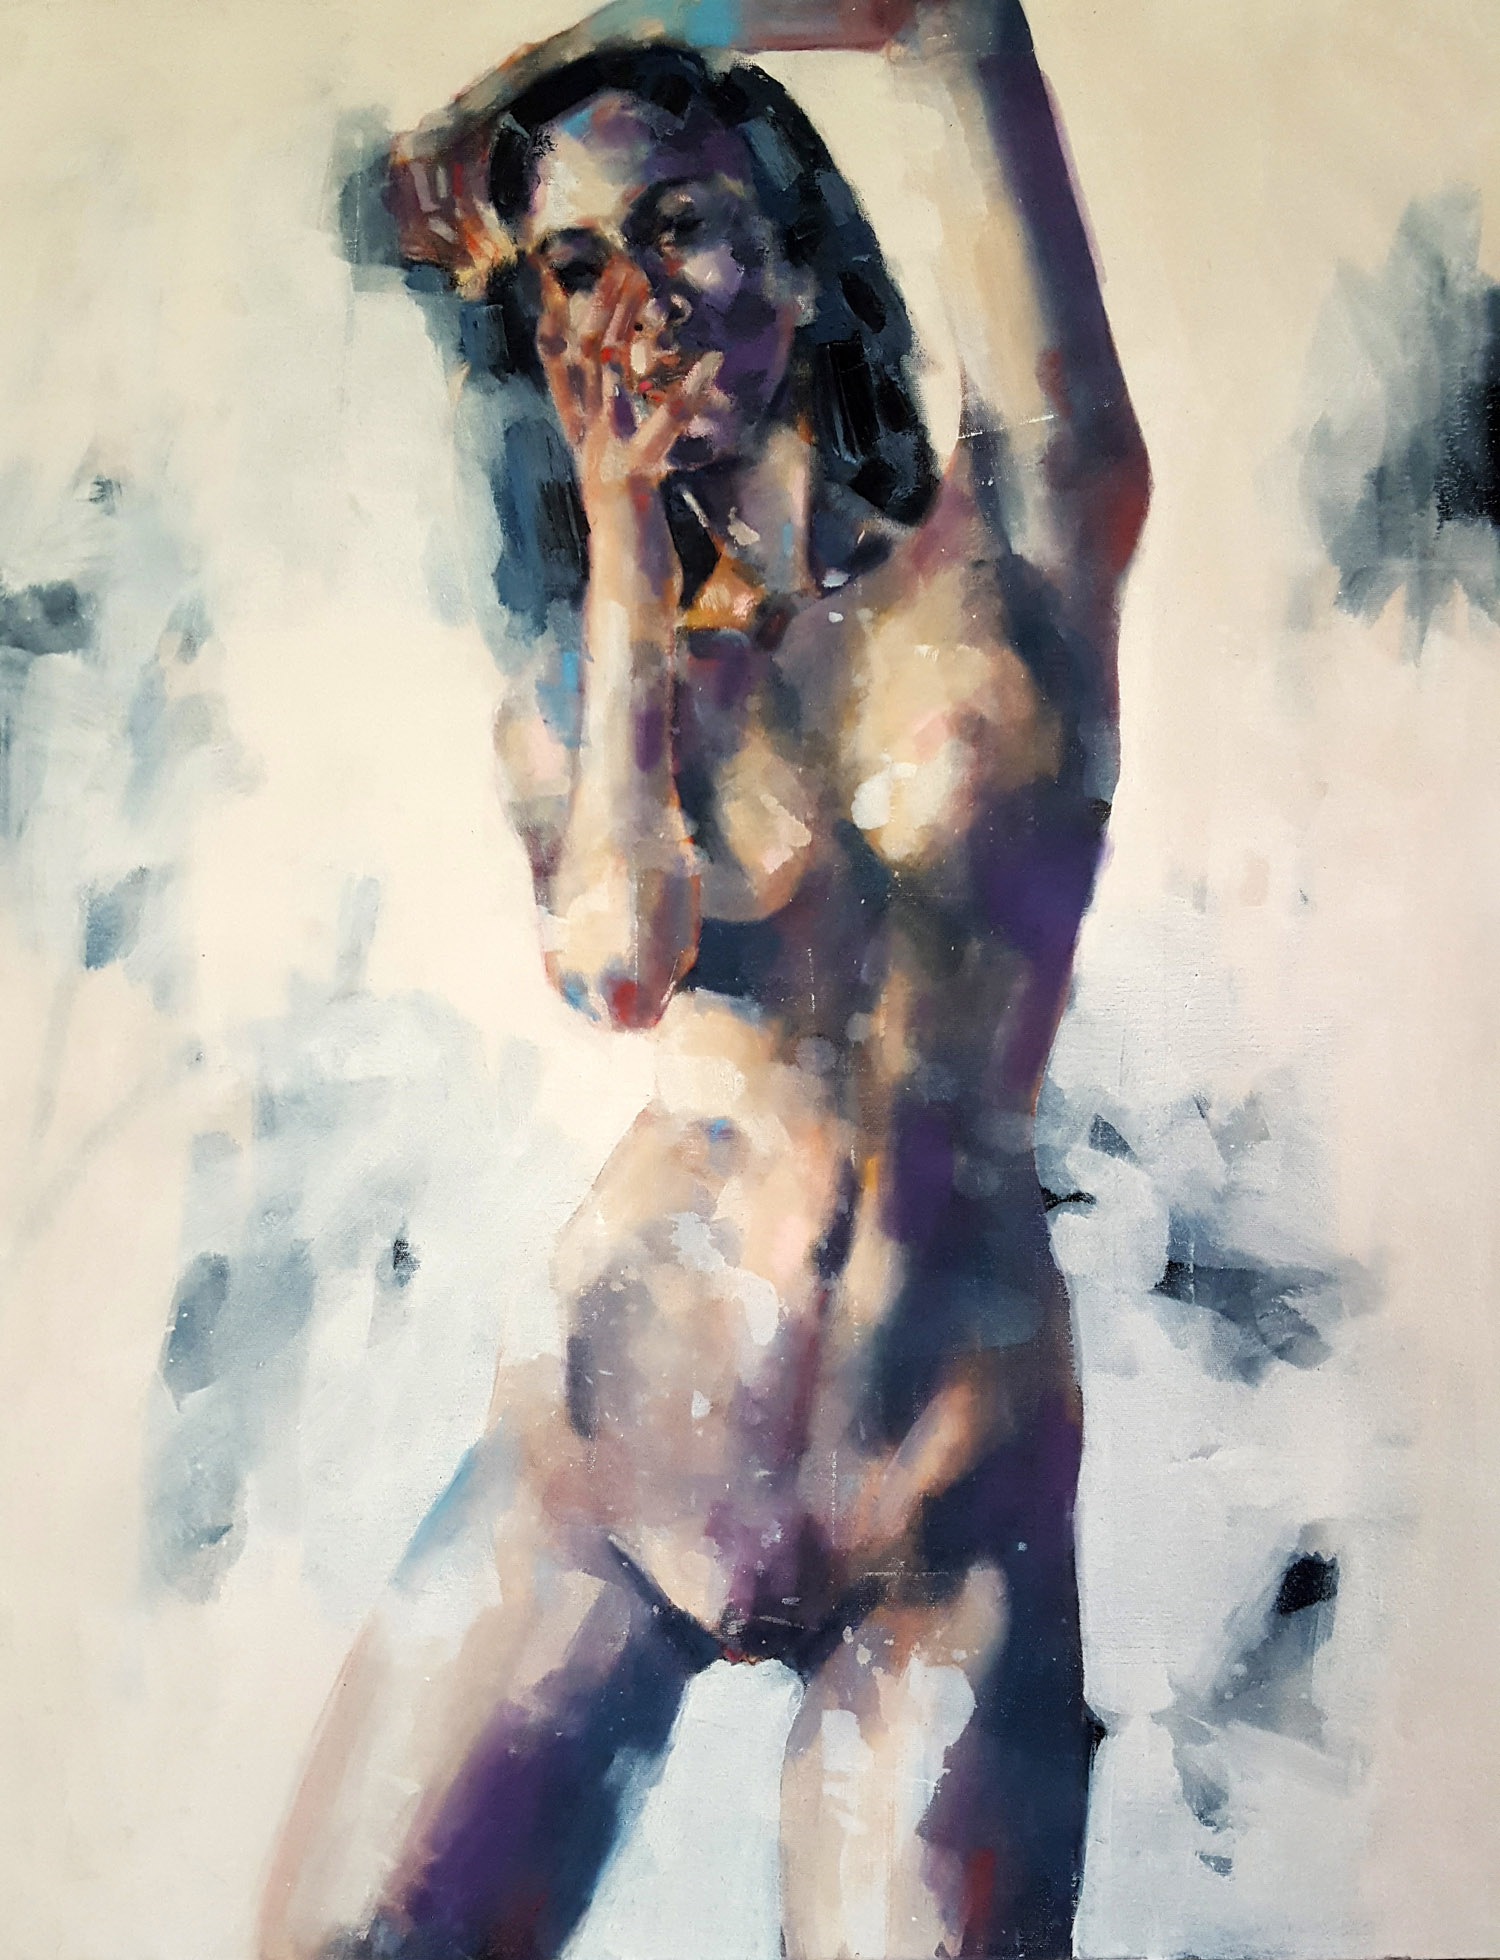 3-14-18 standing figure, oil on canvas, 90x70cm